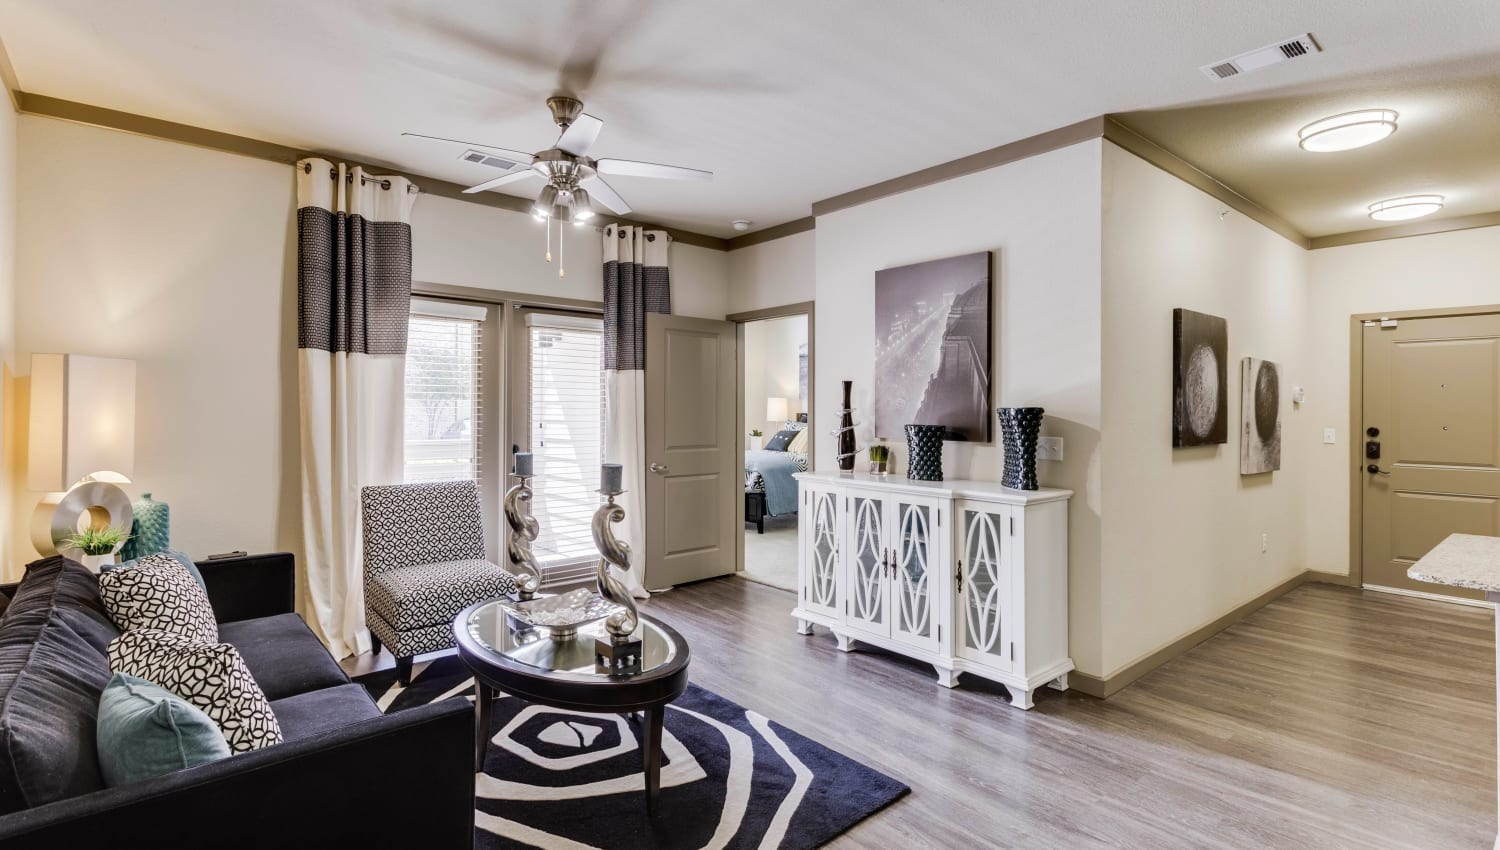 Hardwood floors and a ceiling fan in a model apartment at Tacara at Westover Hills in San Antonio, Texas